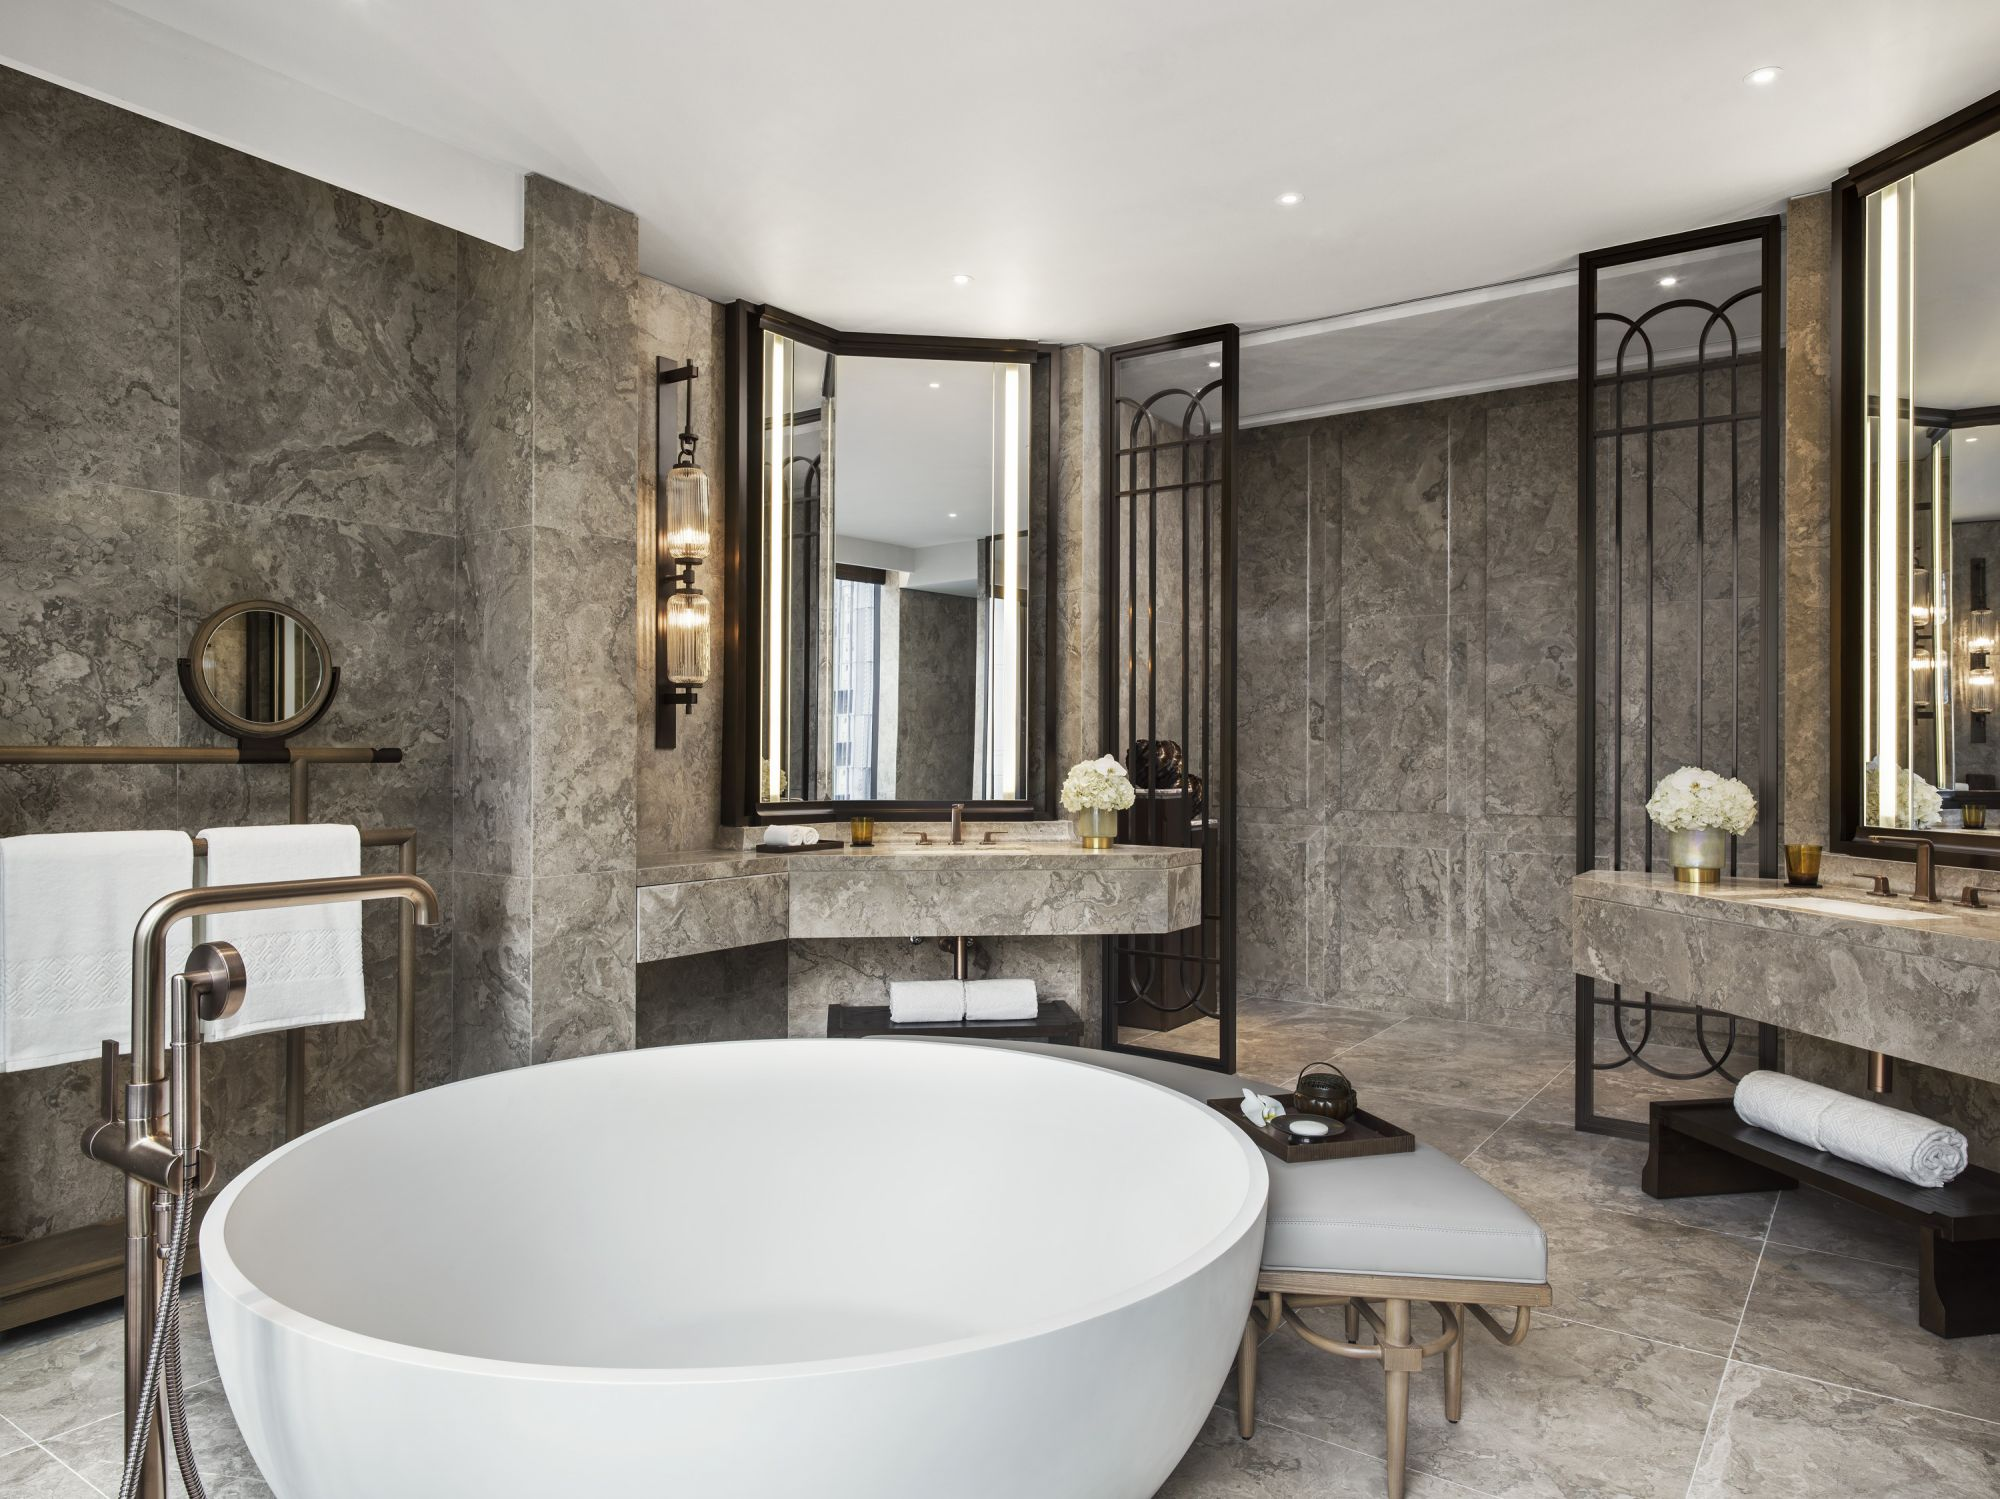 Take A Selfie: The Most Instagrammable Hotel Bathrooms In Hong Kong